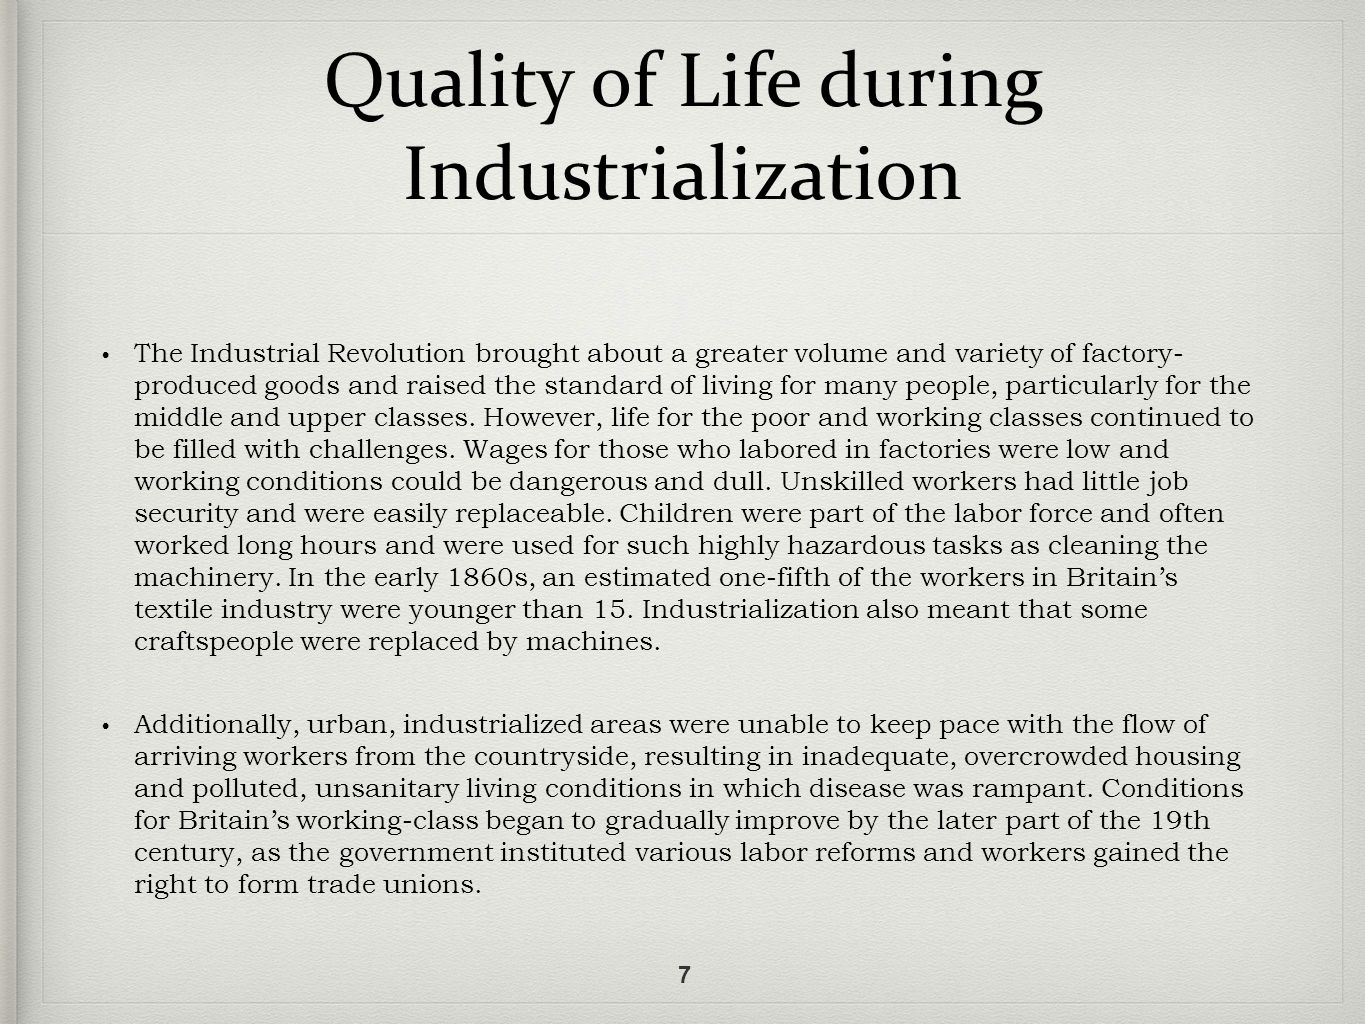 life during the industrial revelotion